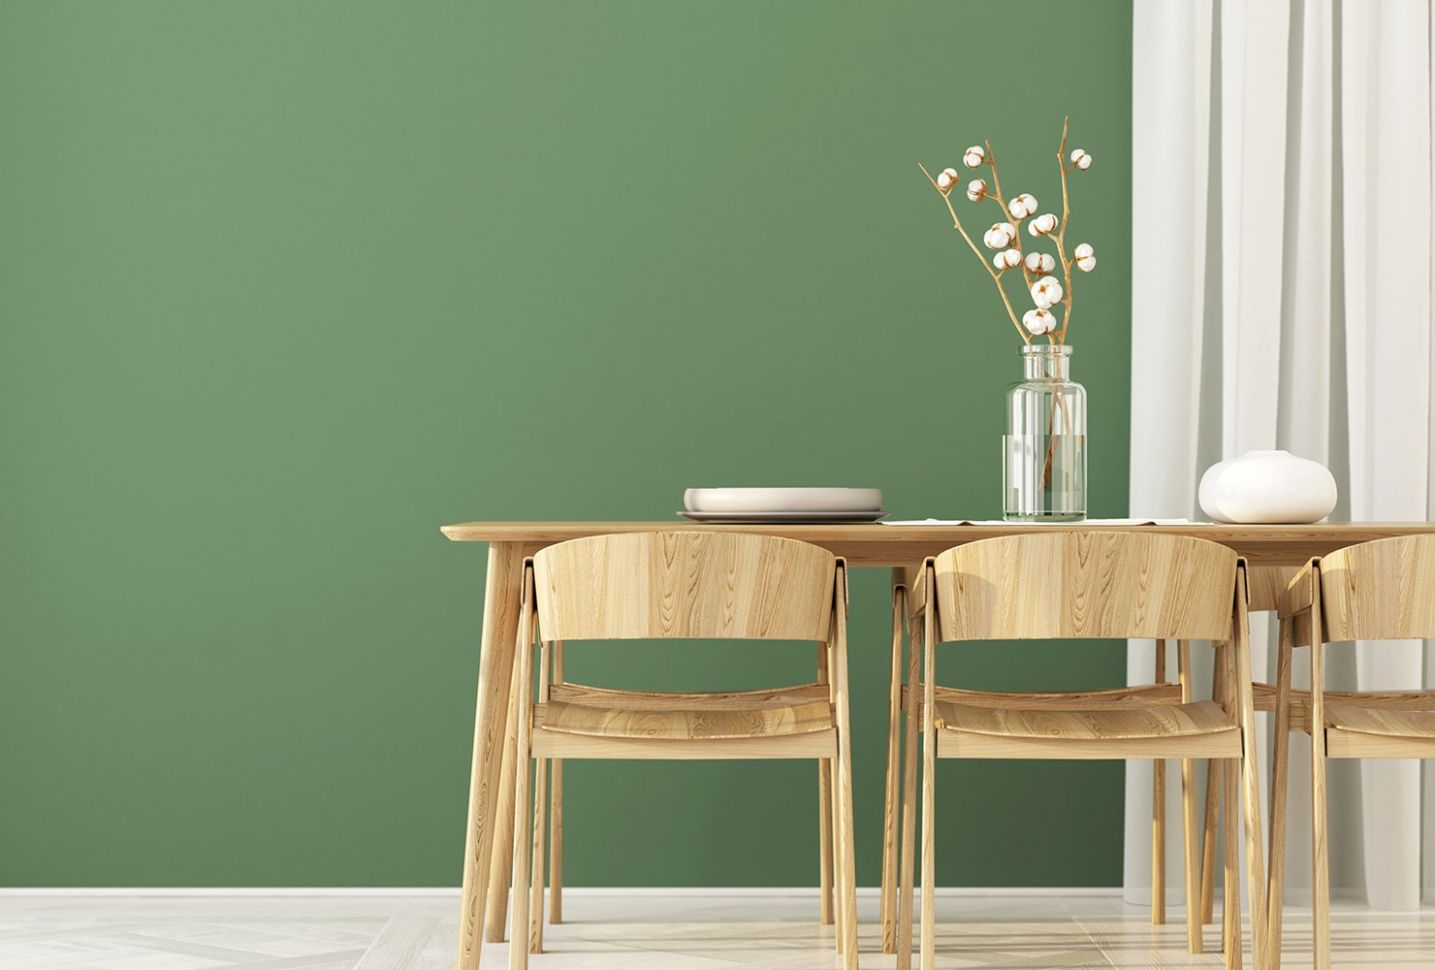 11 Trendy Dining Room Wall Colors to Transform Your Space | Shutterfly - dining room ideas green